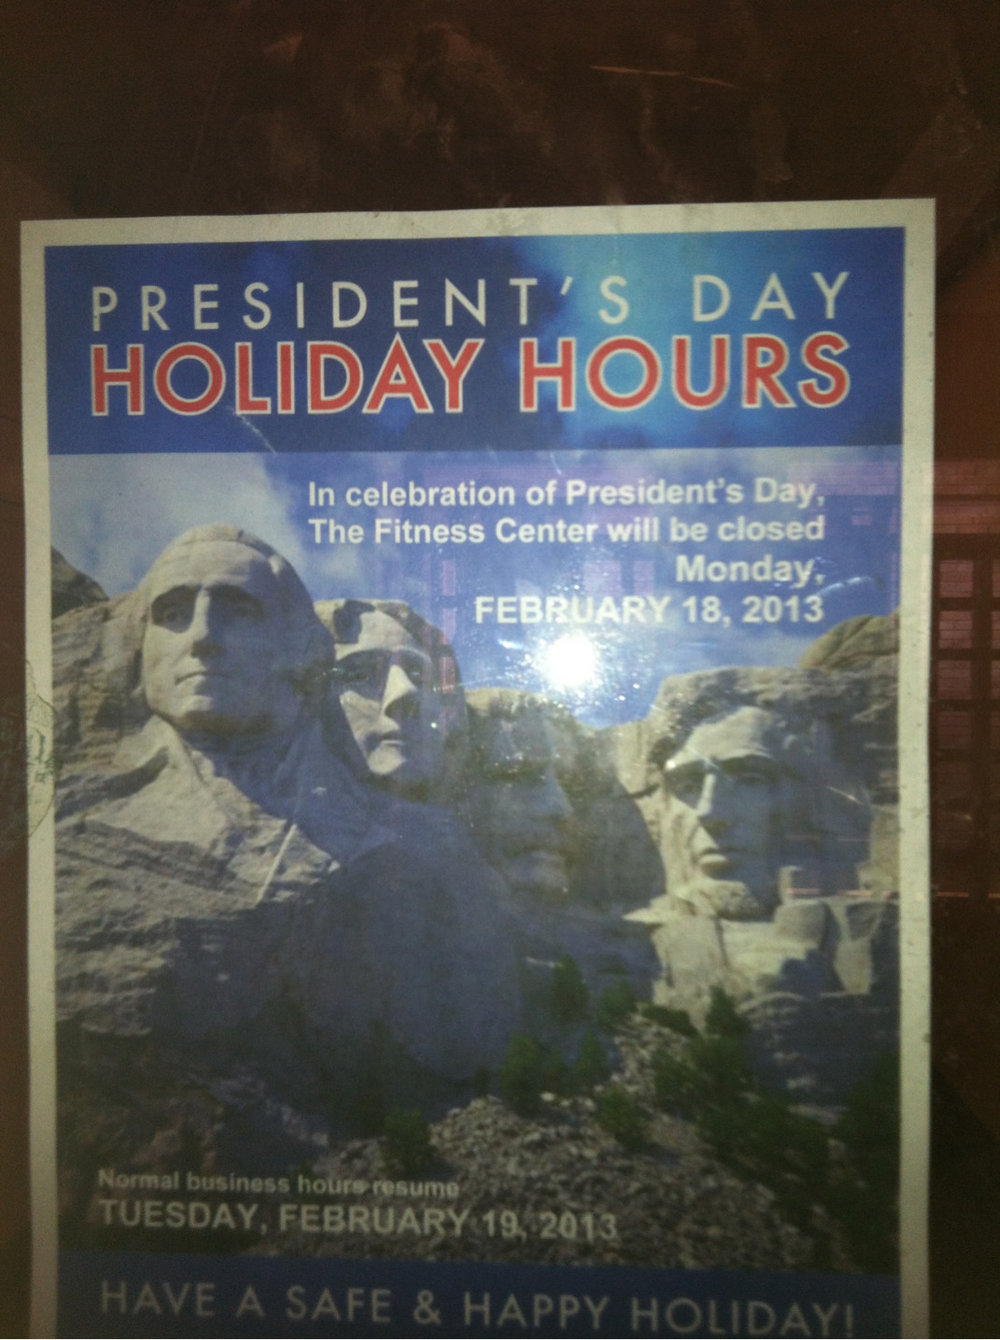 I hereby decree that the New York Presbyterian + 1 Hospital gym will be closed on President's Day.